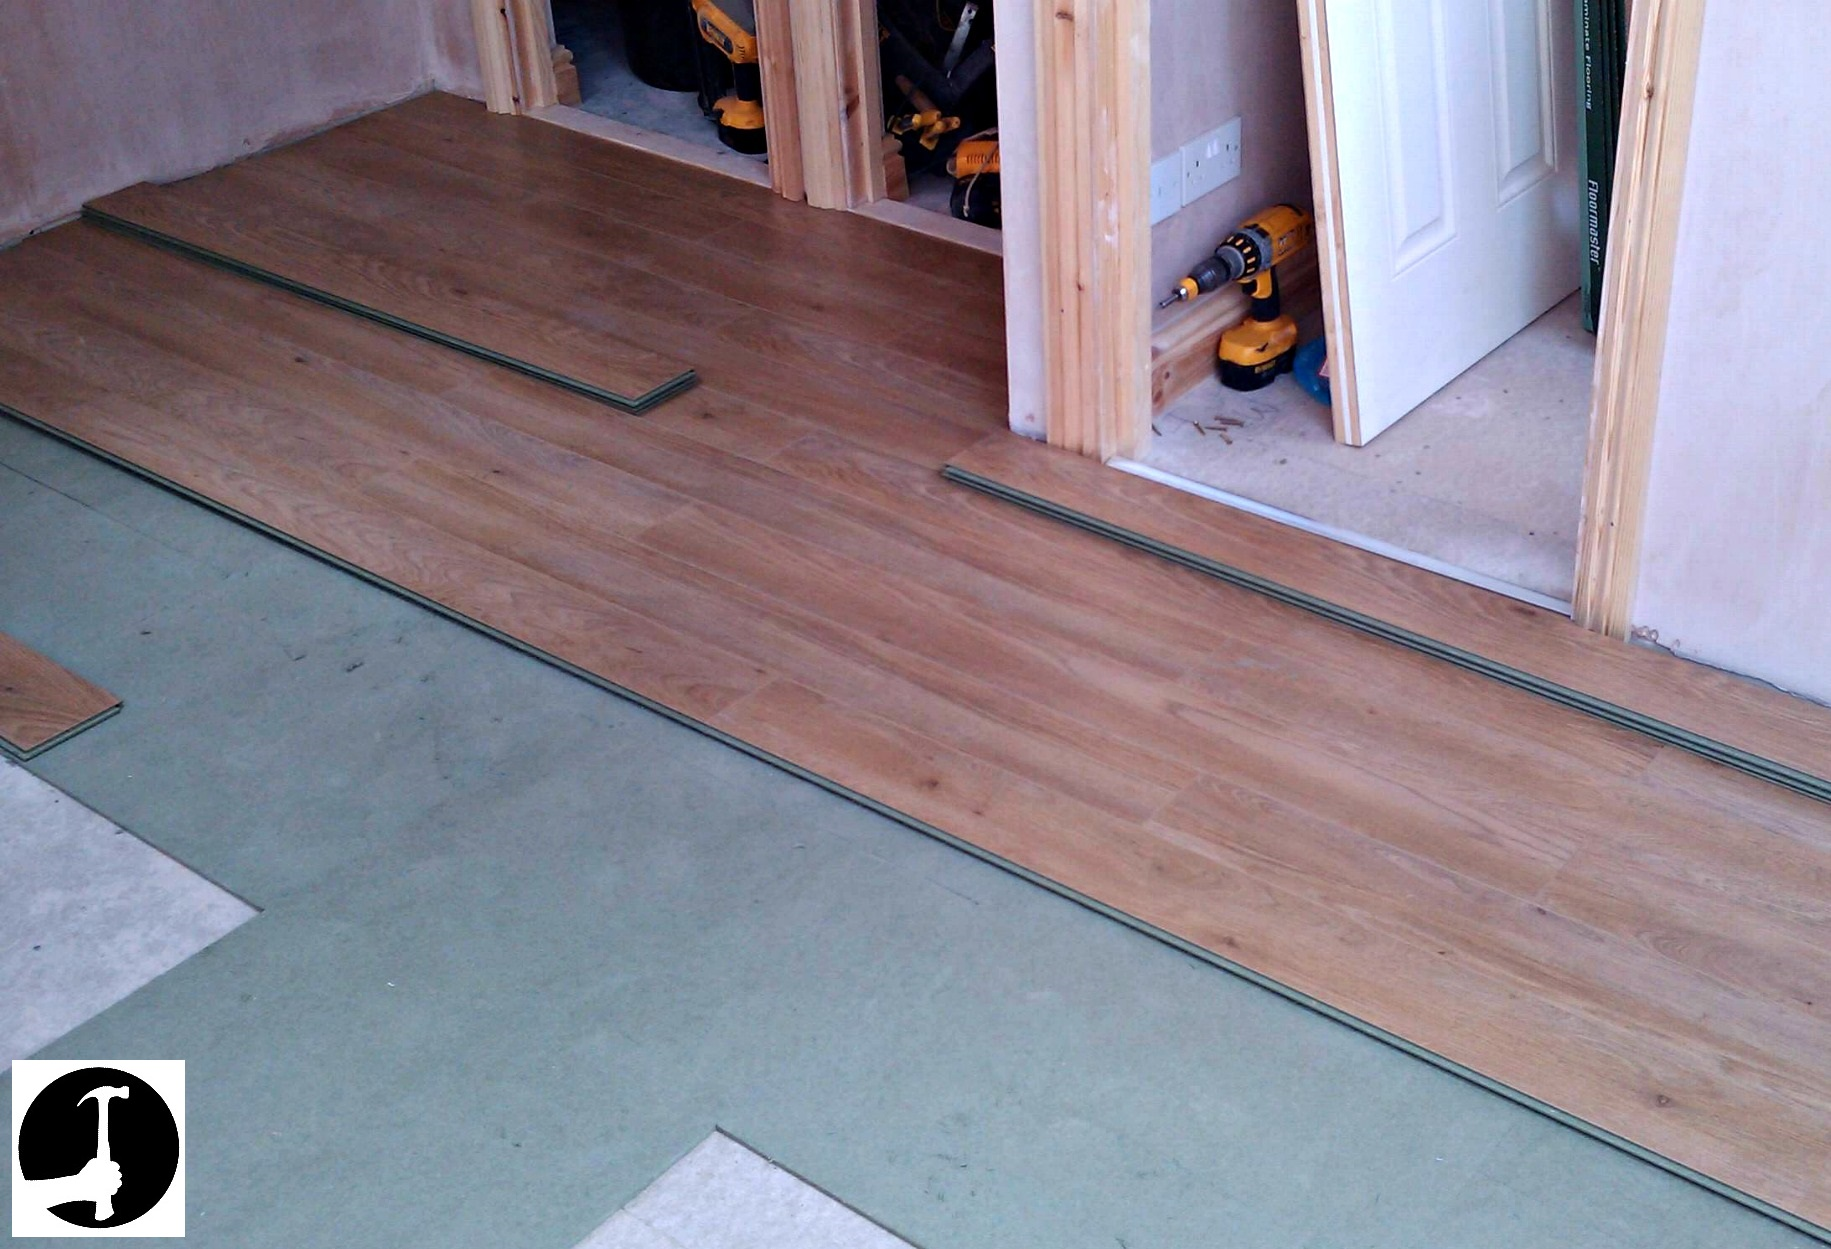 Laying Laminate In A Doorway - What to look for in laminate wood flooring